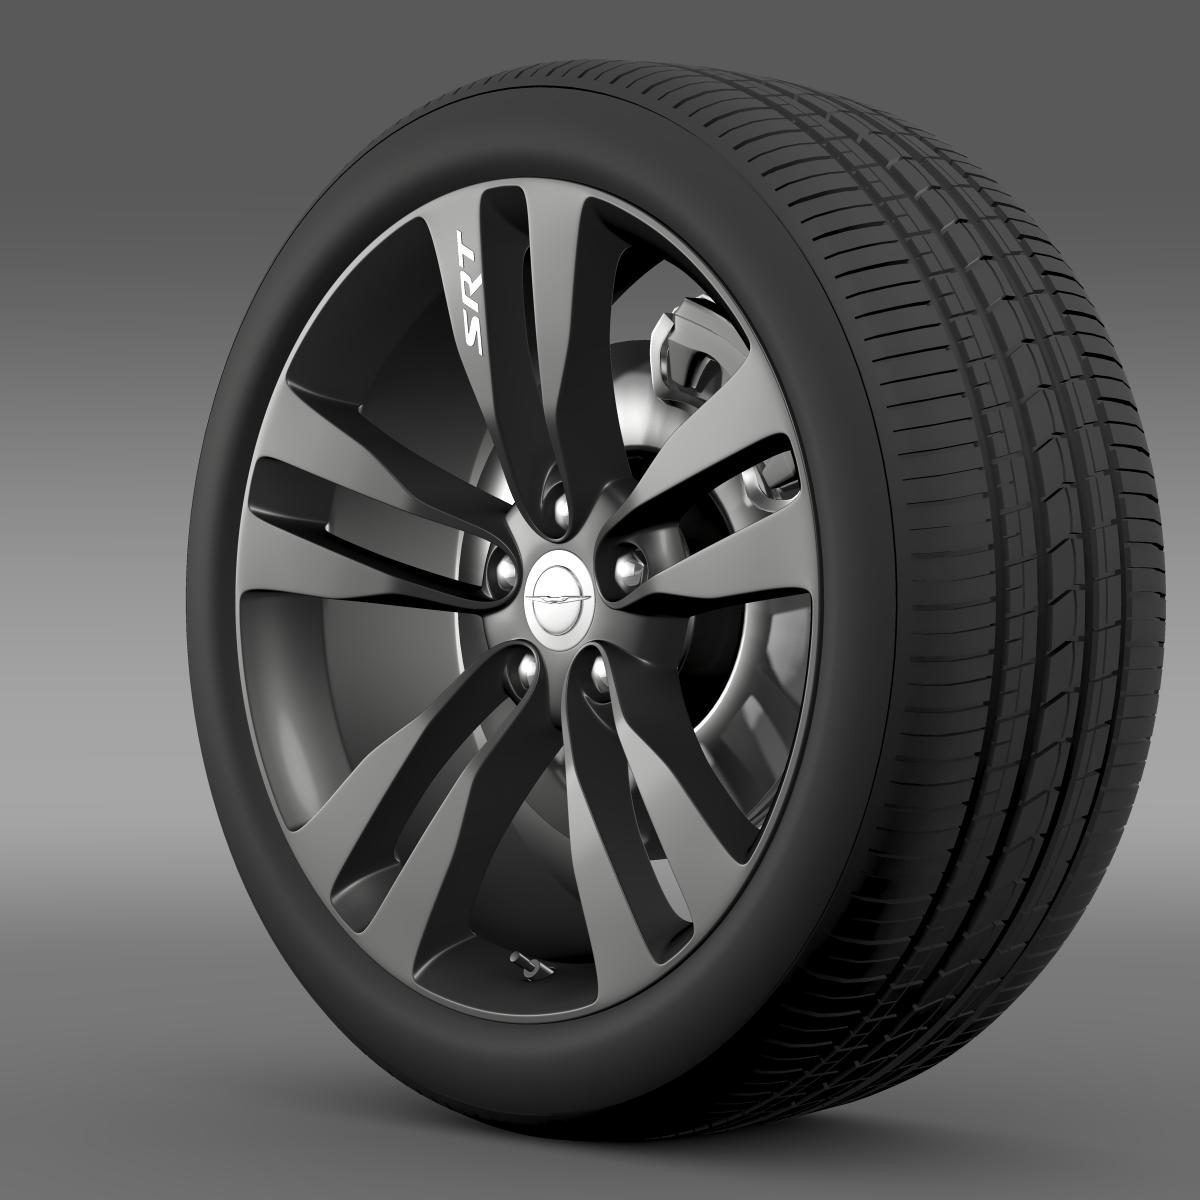 chrysler 300 srt8 satin vapor wheel 3d model 3ds max fbx c4d lwo ma mb hrc xsi obj 210640